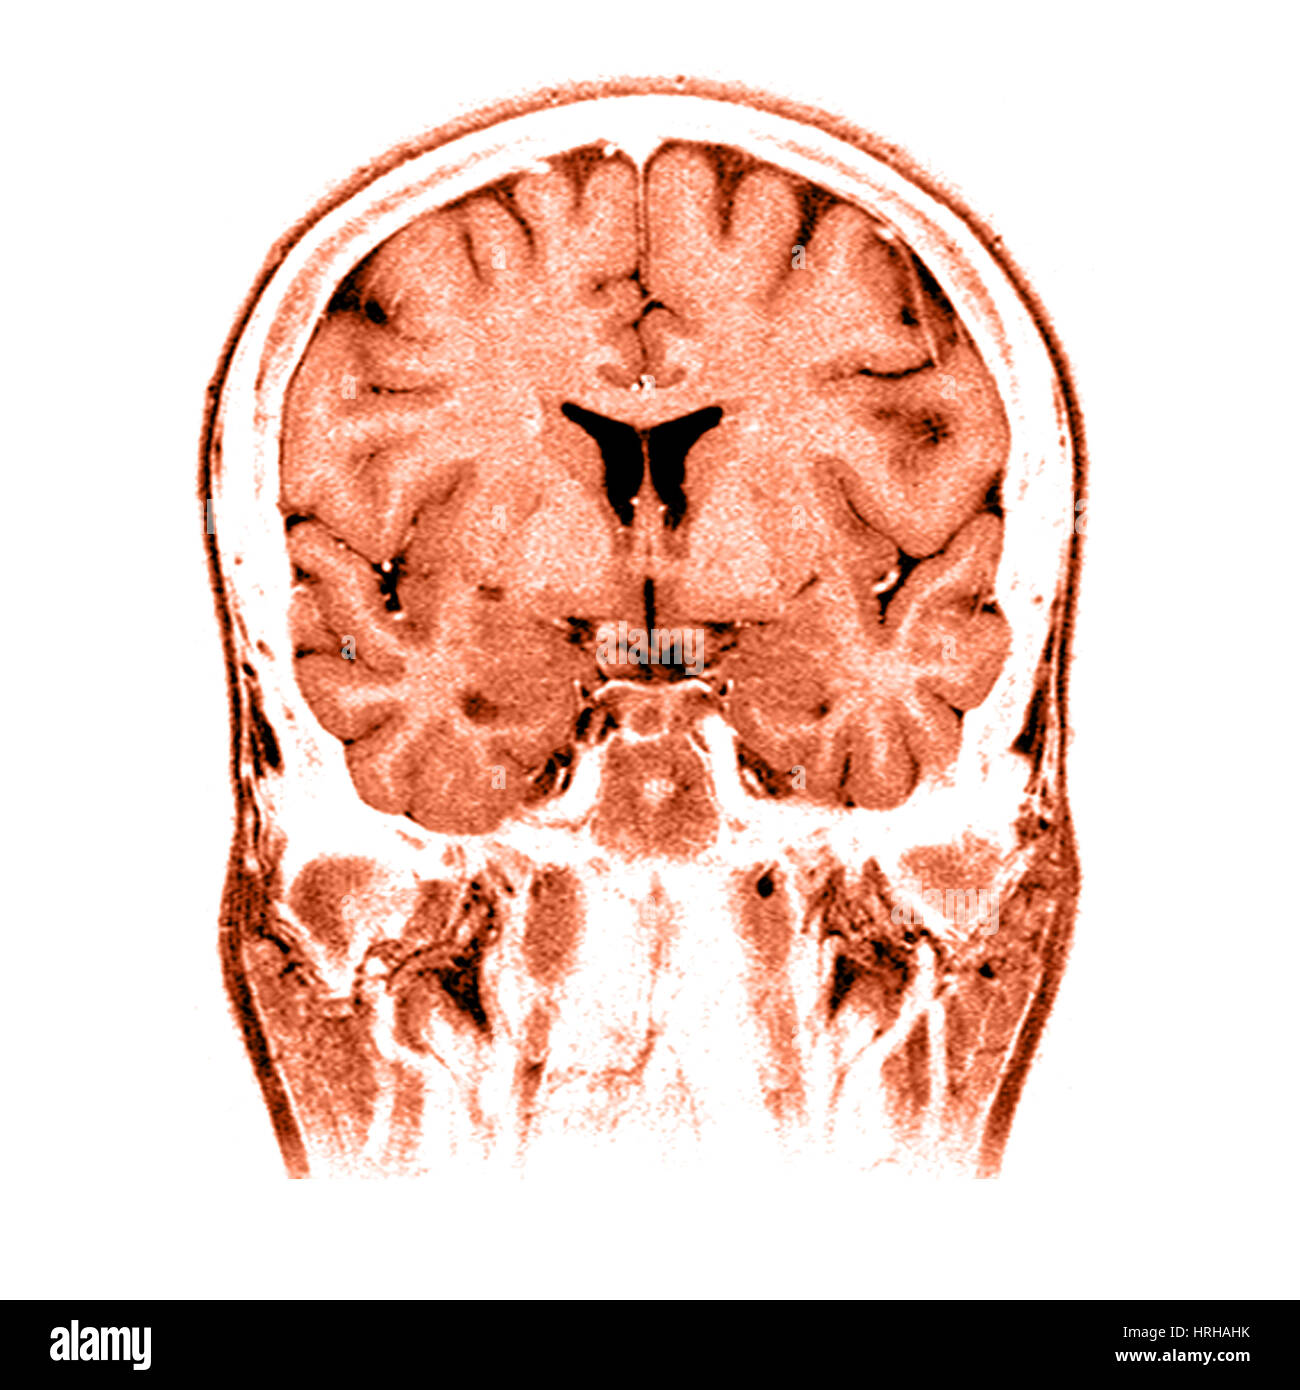 Normal brain imaging examples  Radiology Reference